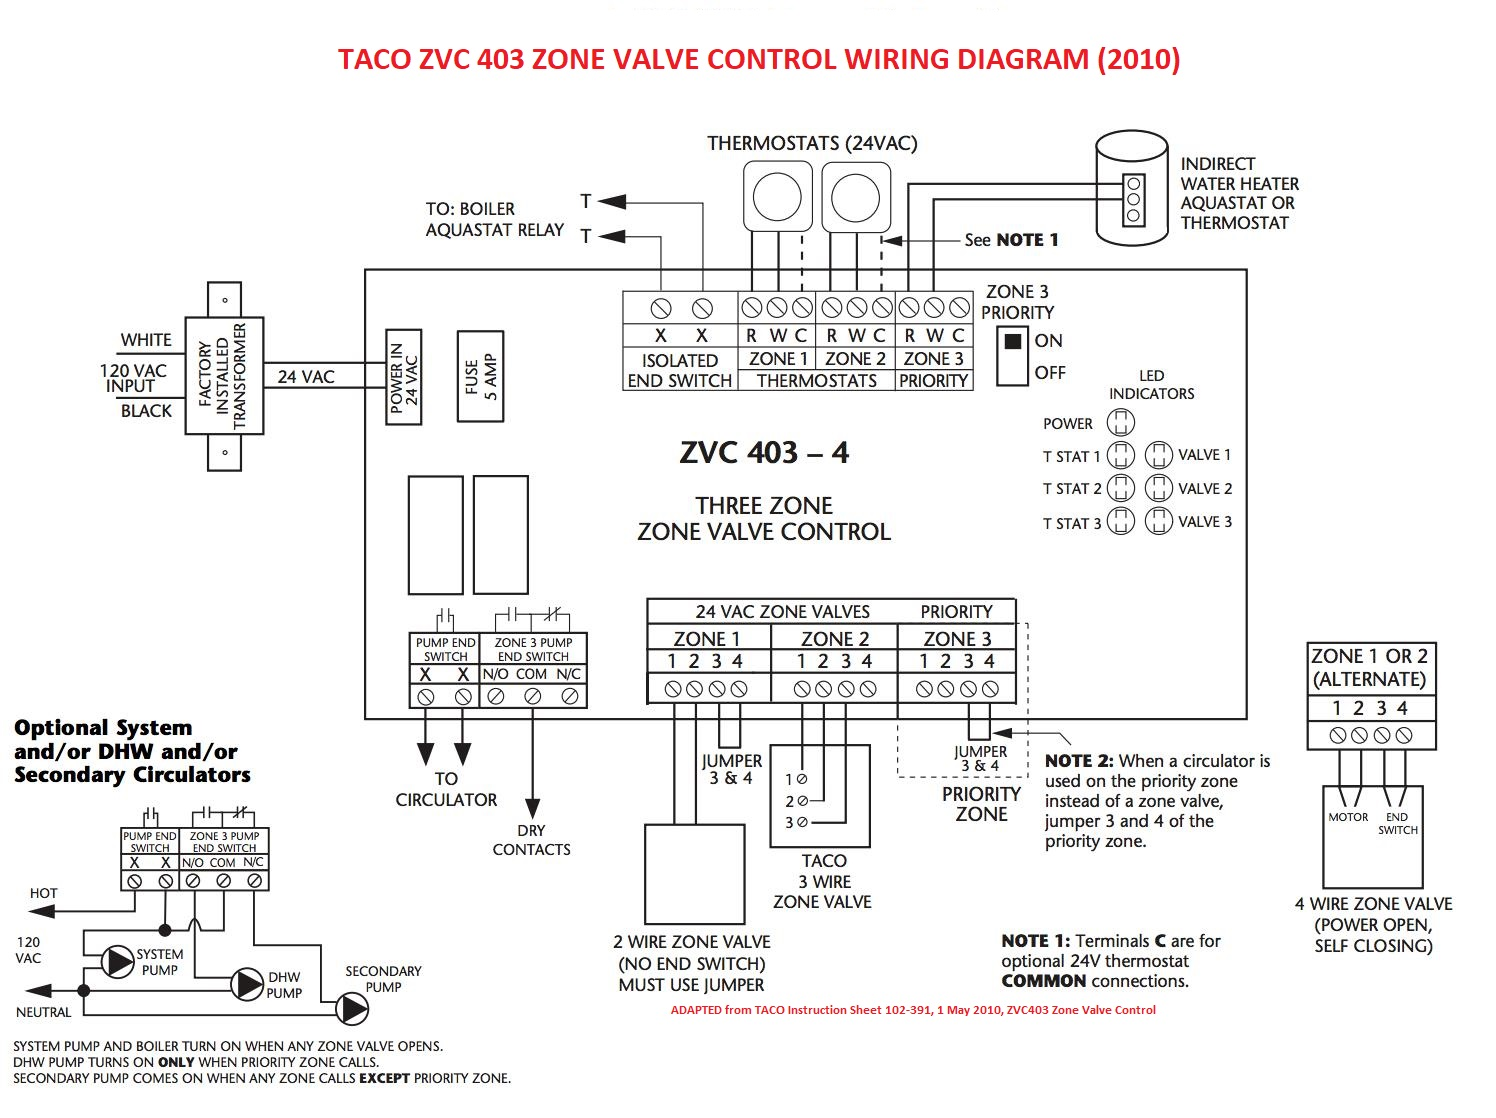 Zone Valve Wiring Manuals Installation Instructions Guide To Heating System Zone Valves Zone Valve Installation Inspection Repair Guide